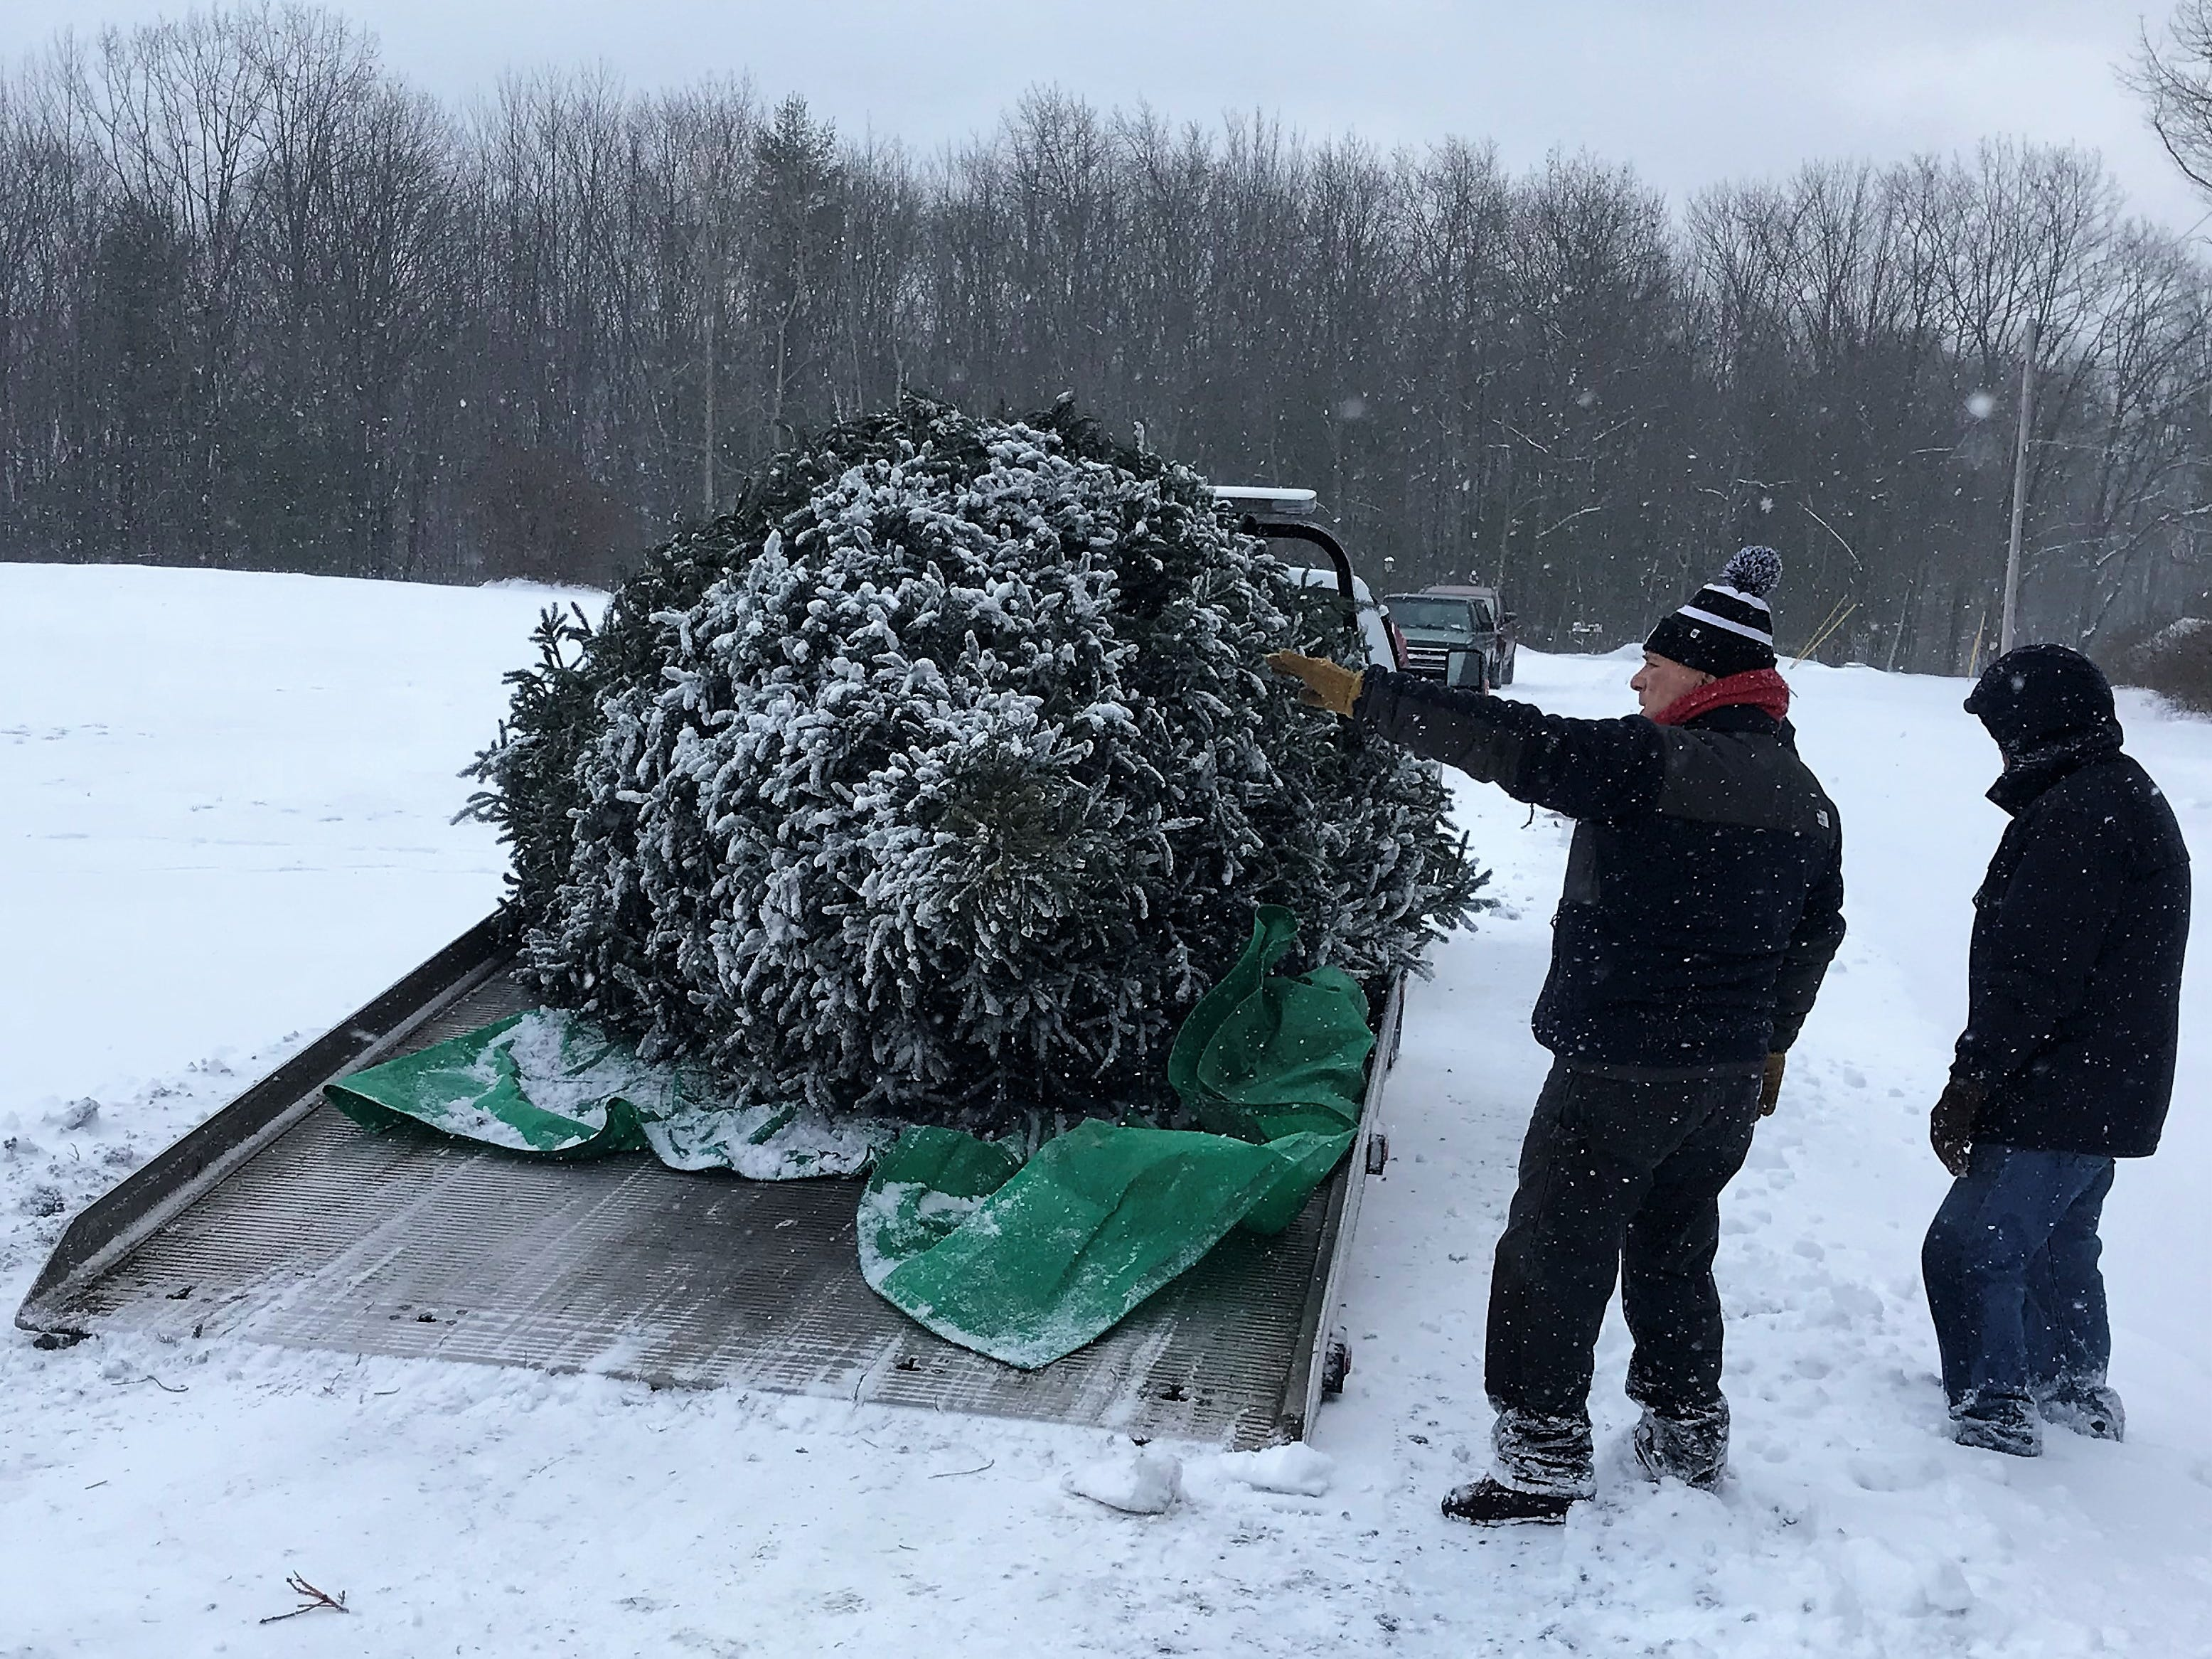 A donated Christmas tree is ready to be delivered to the Clemens Center in Elmira for the annual Arctic League broadcast.